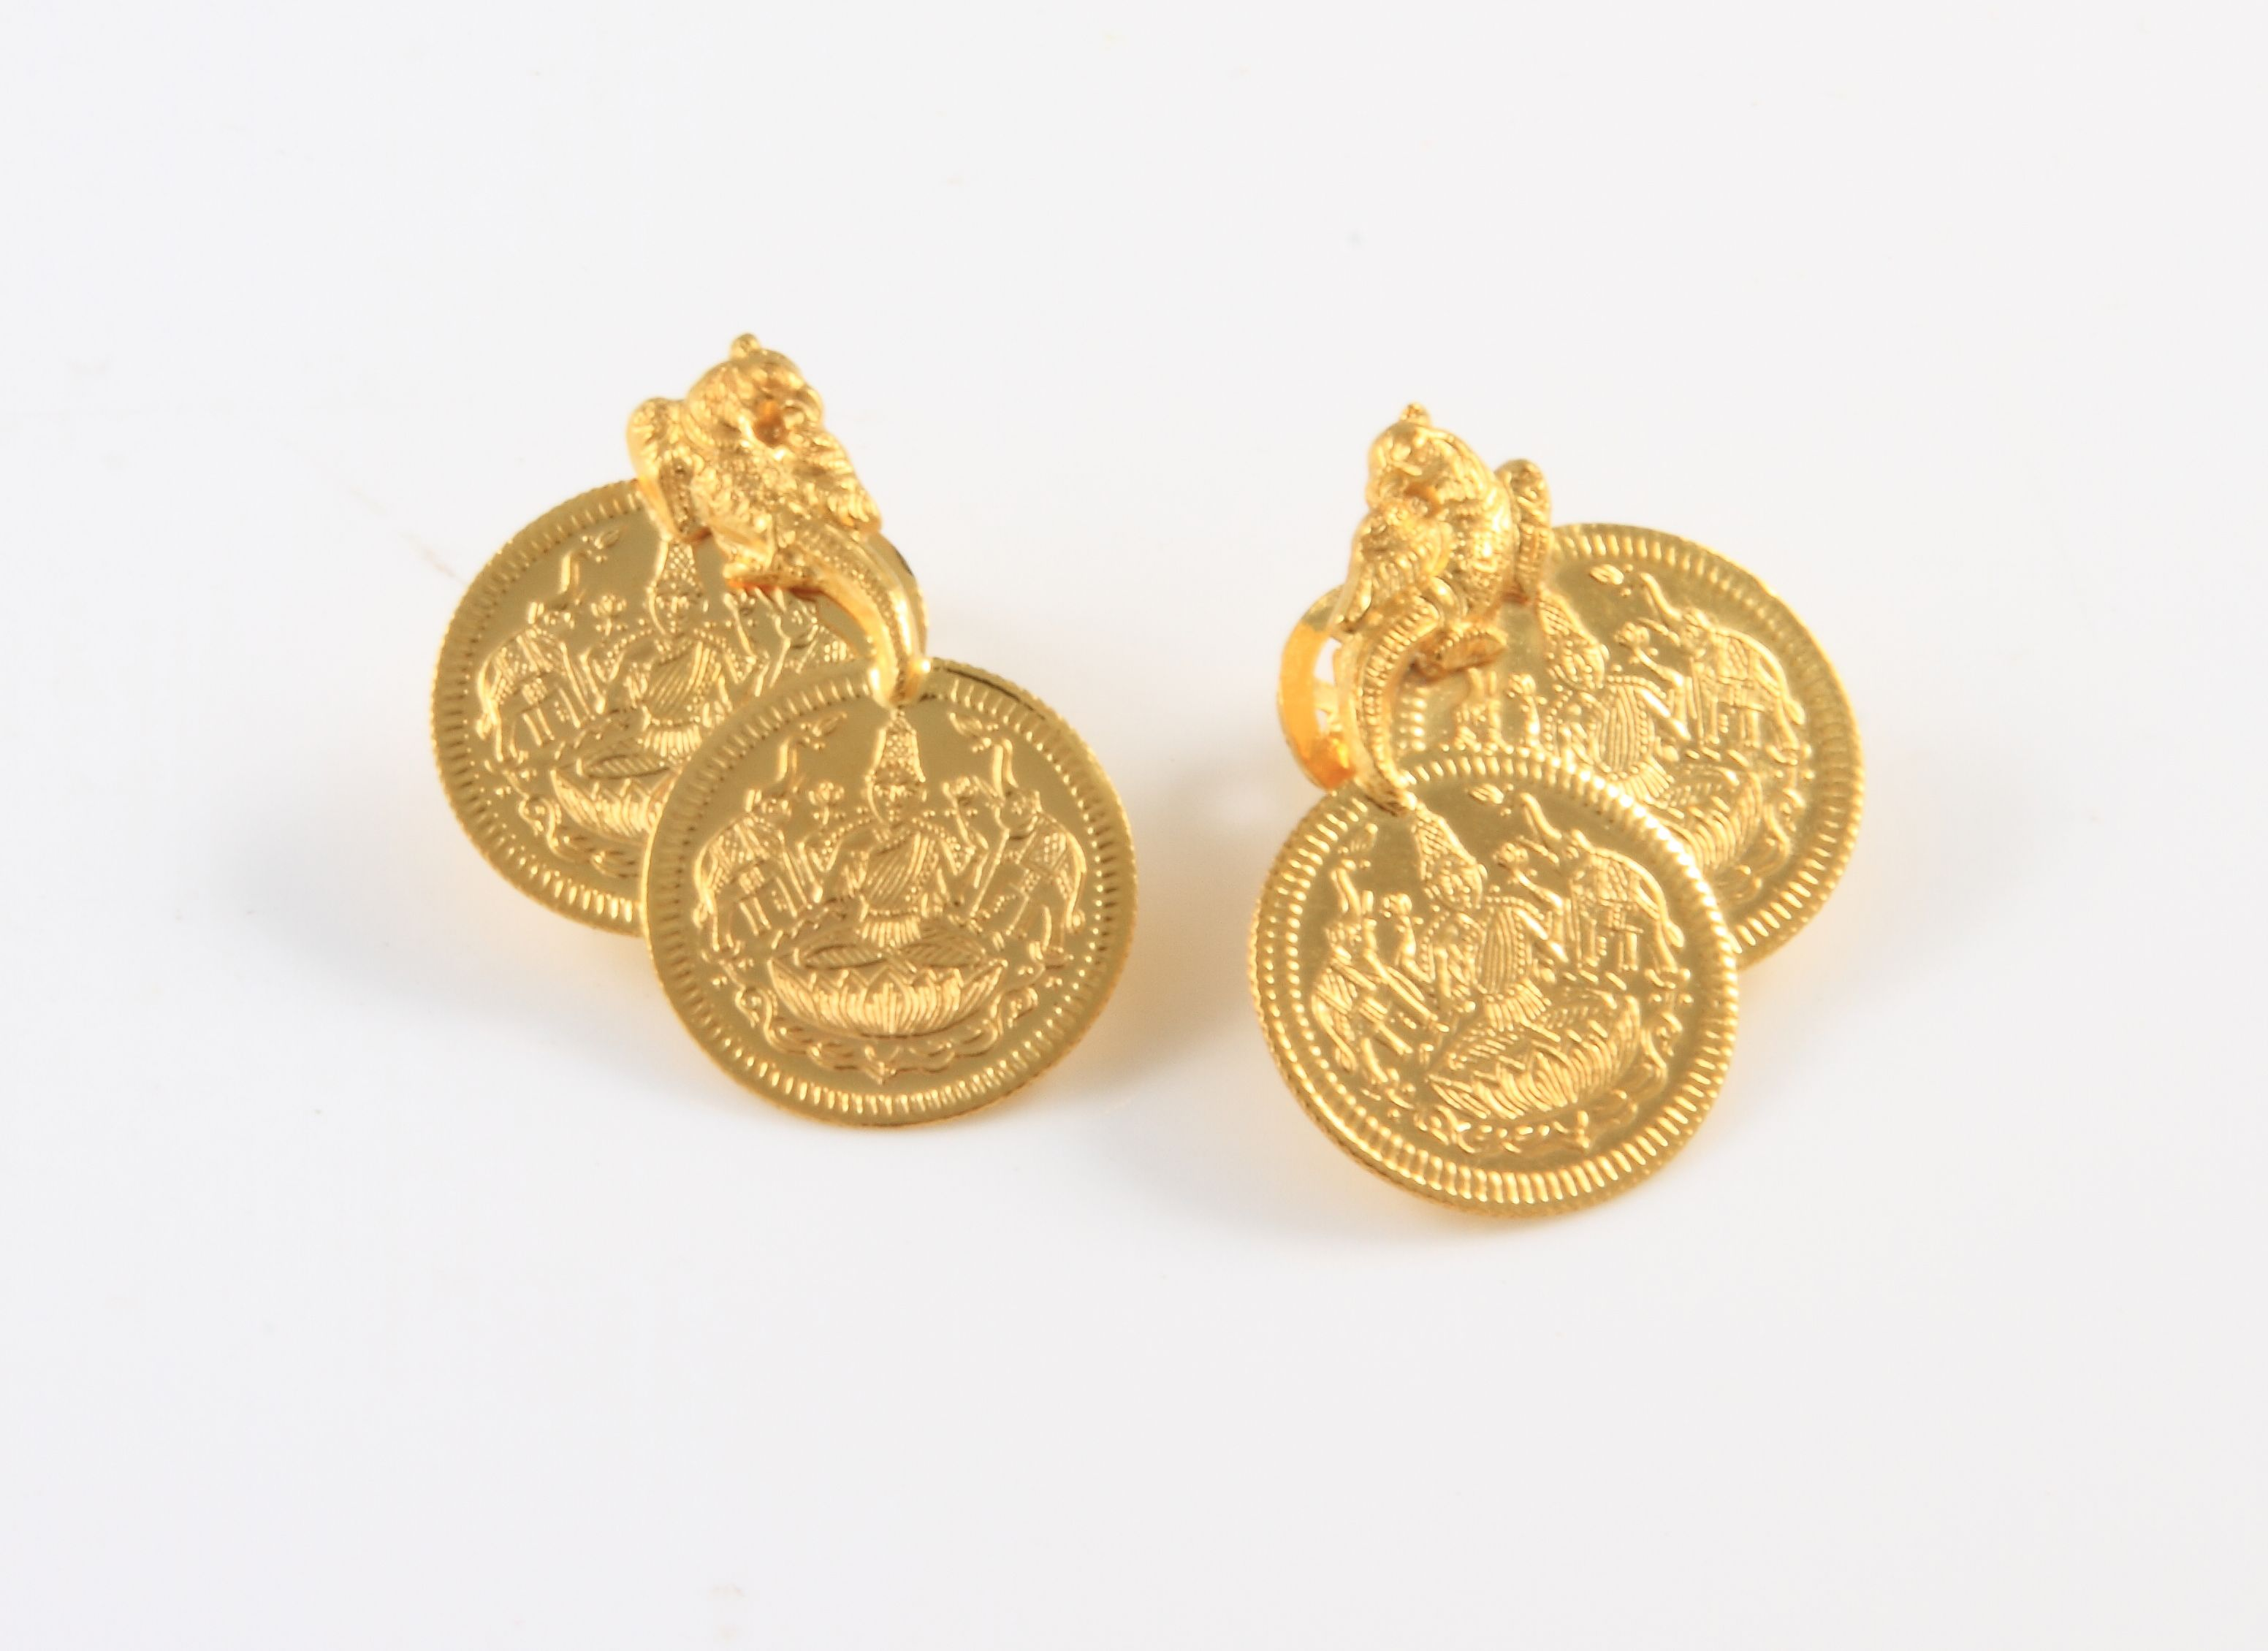 gold lakshmi coinsquotlakshmi quot goddess of wealth studs in